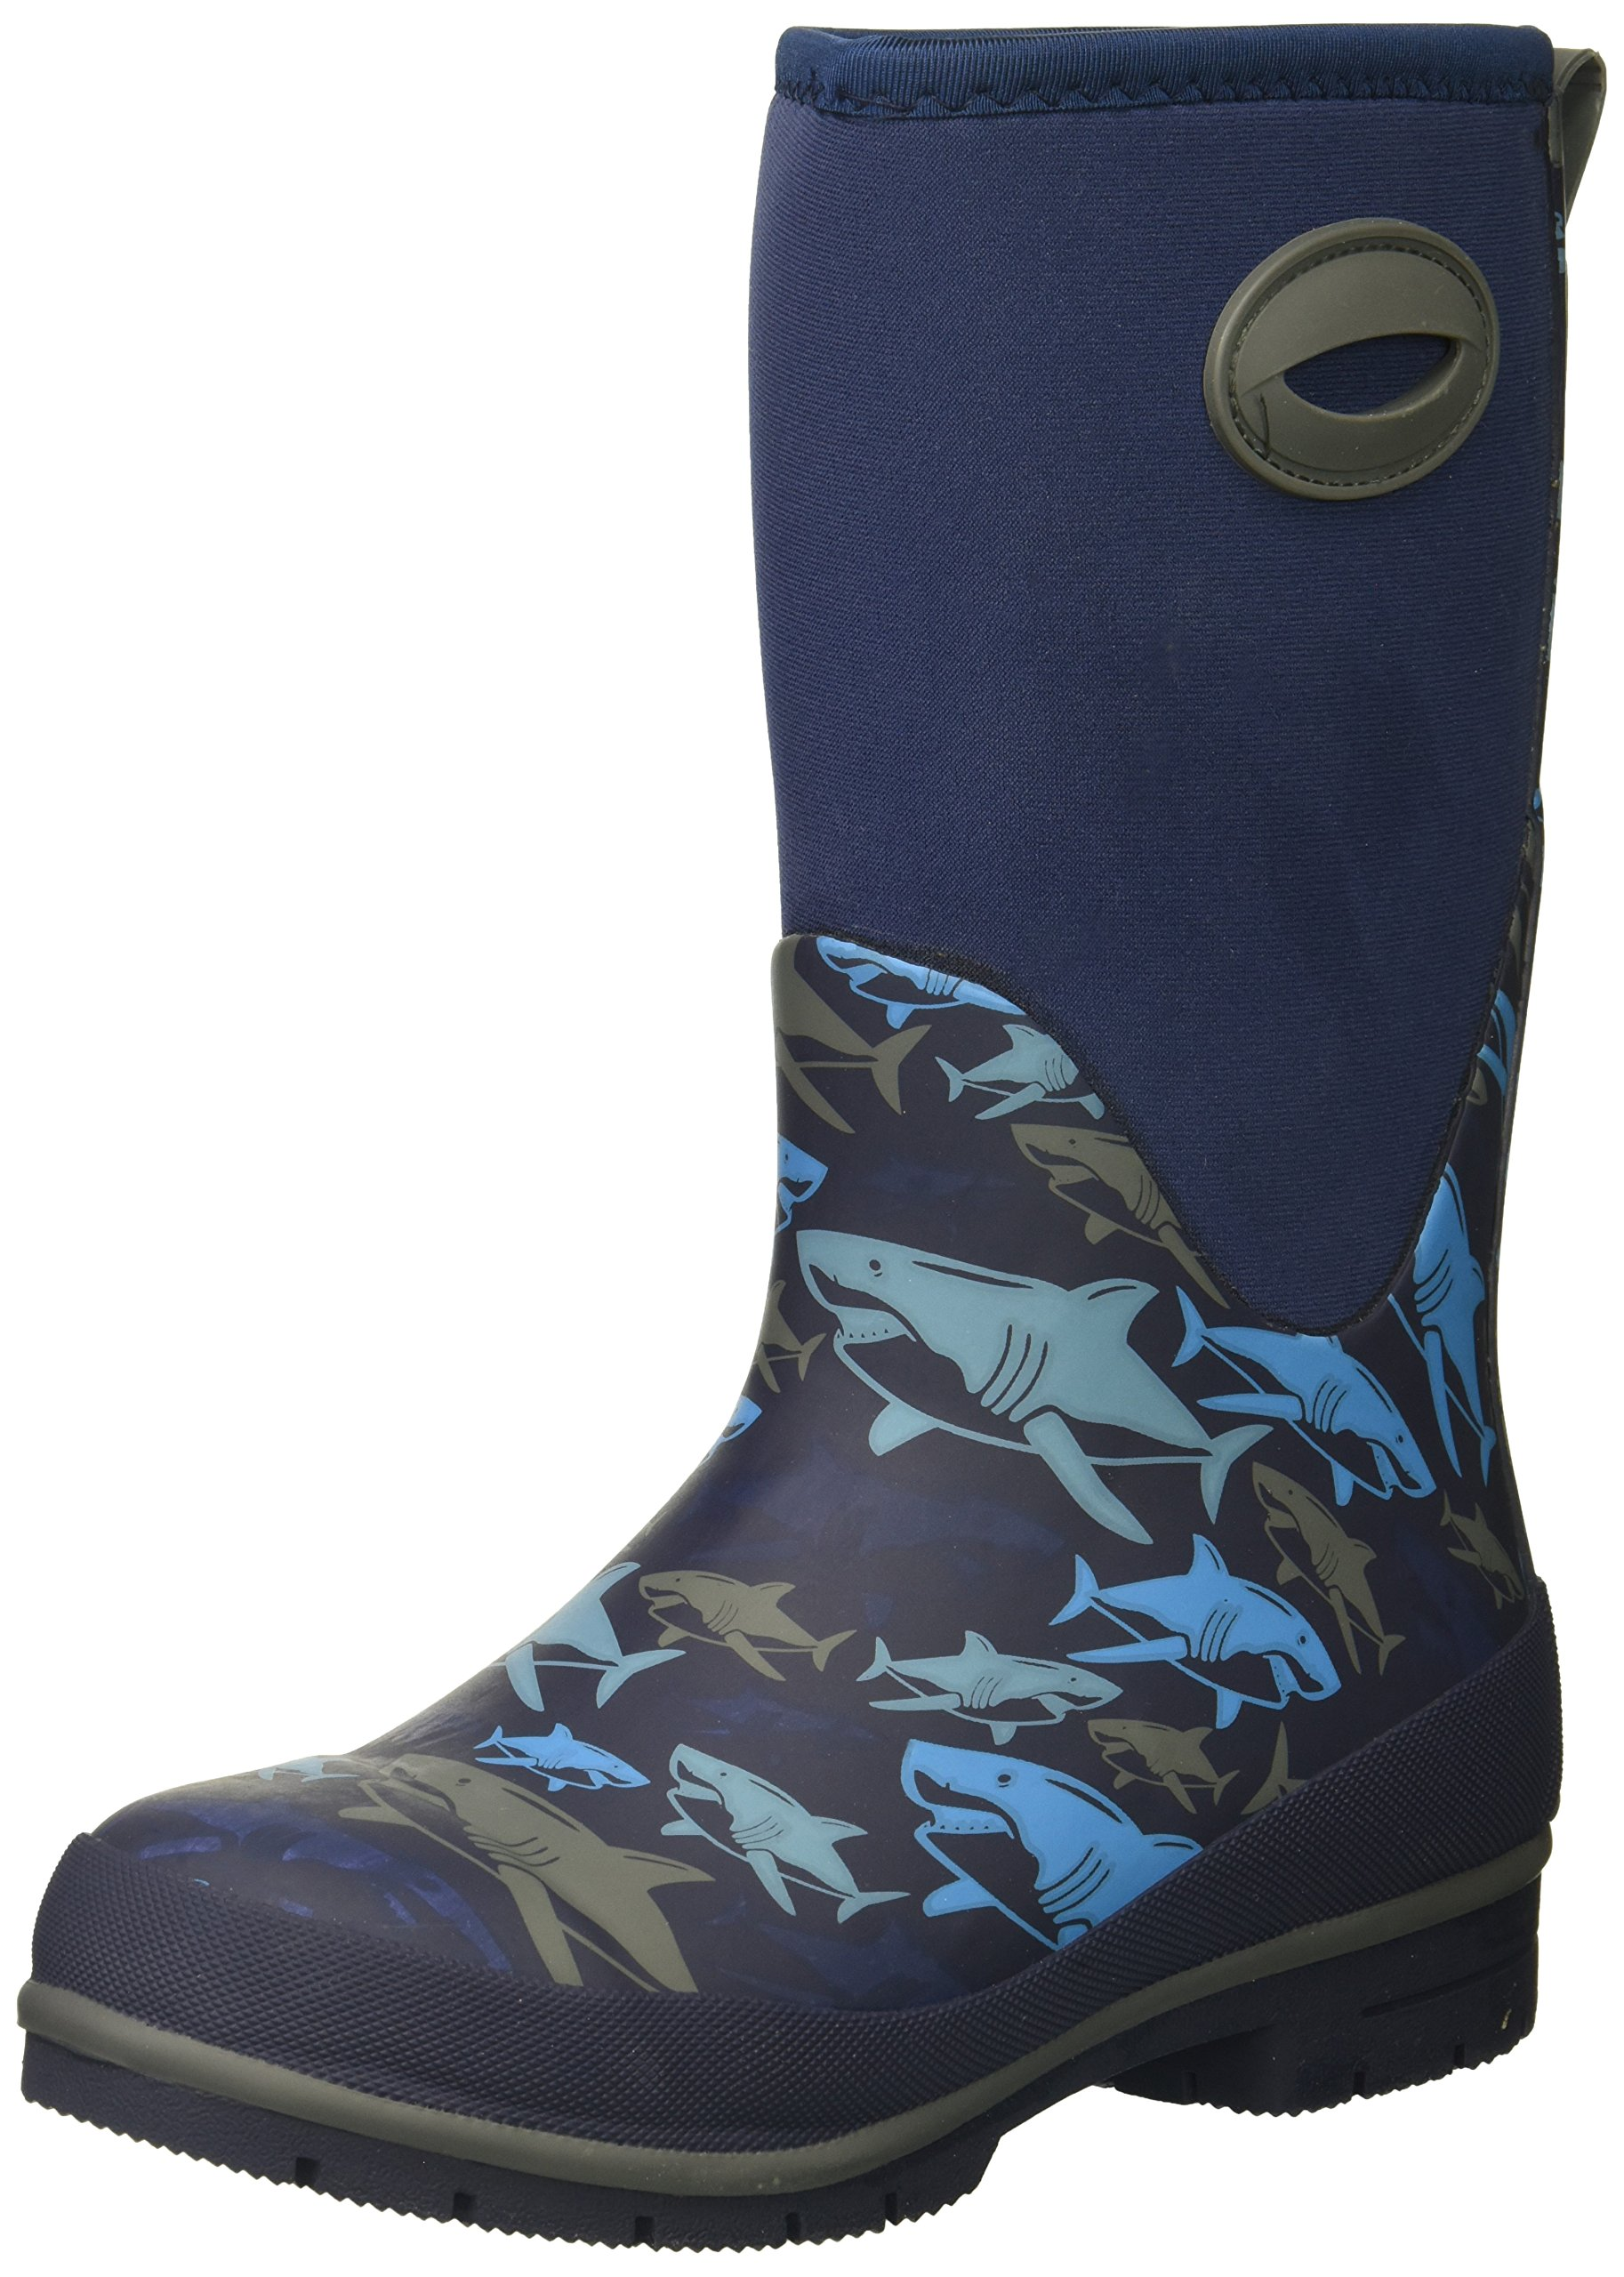 Western Chief Cold Rated Neoprene Boot with Memory Foam Snow, Shark Attack, 12 M US Little Kid